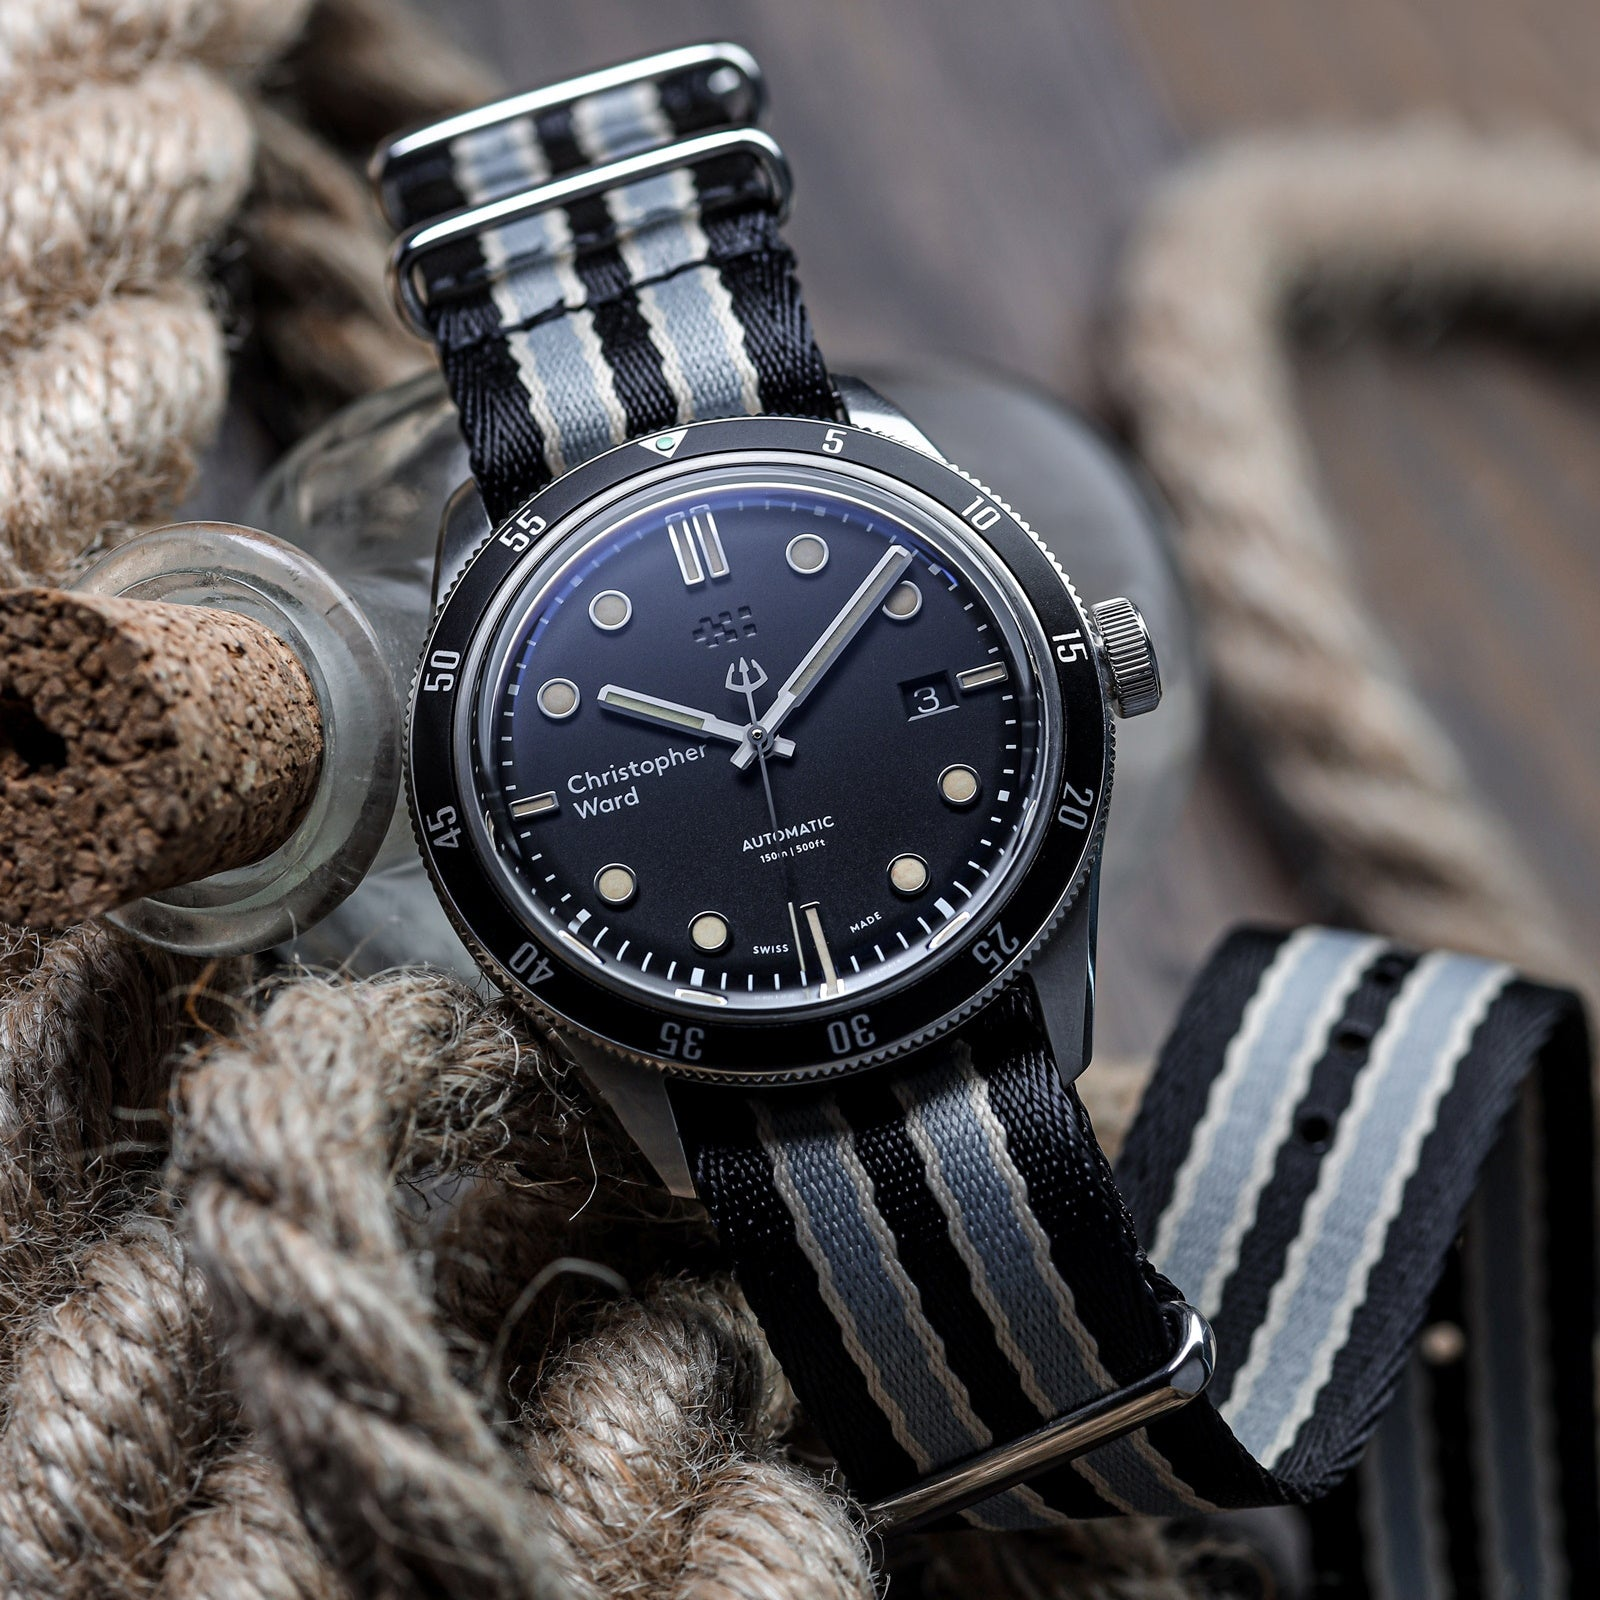 Professional Striped NATO Watch Strap with Polished Hardware